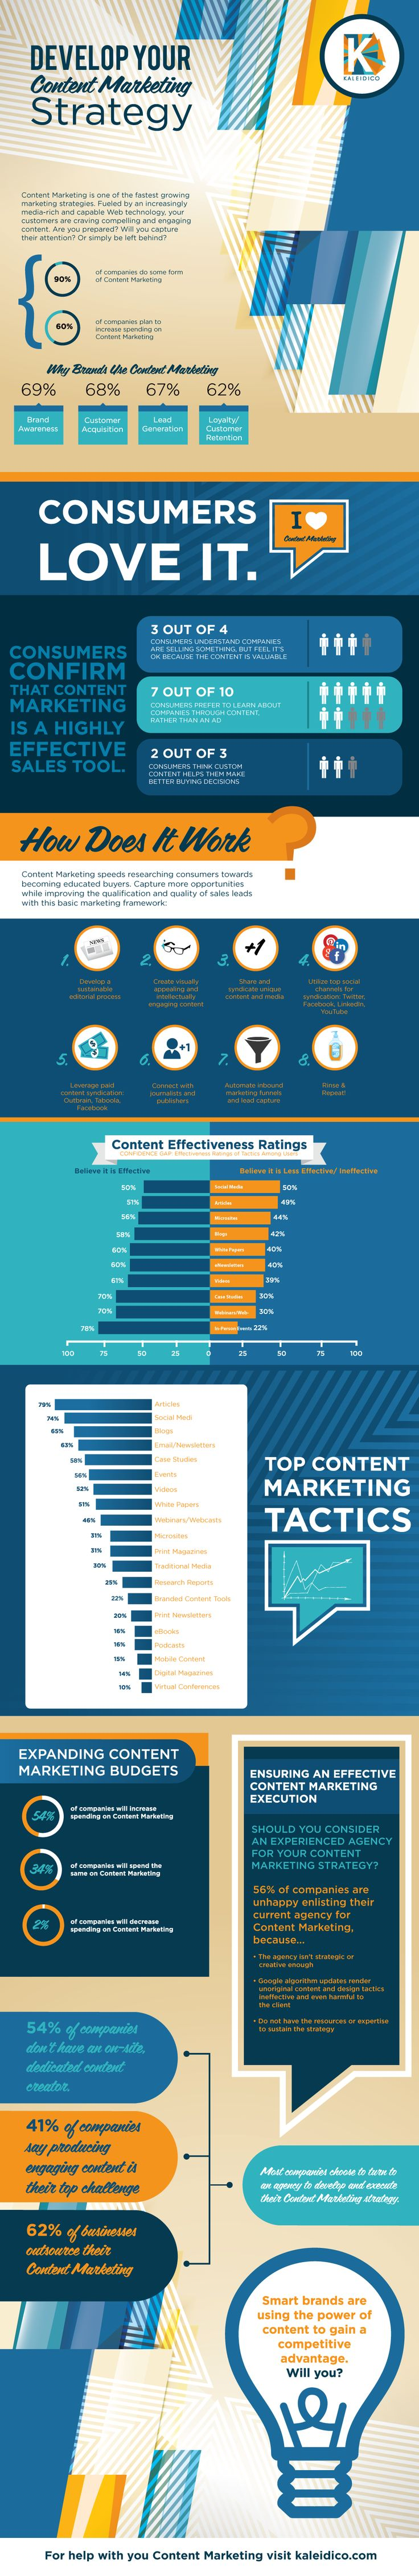 How to Develop Your #ContentMarketing Strategy - #infographic